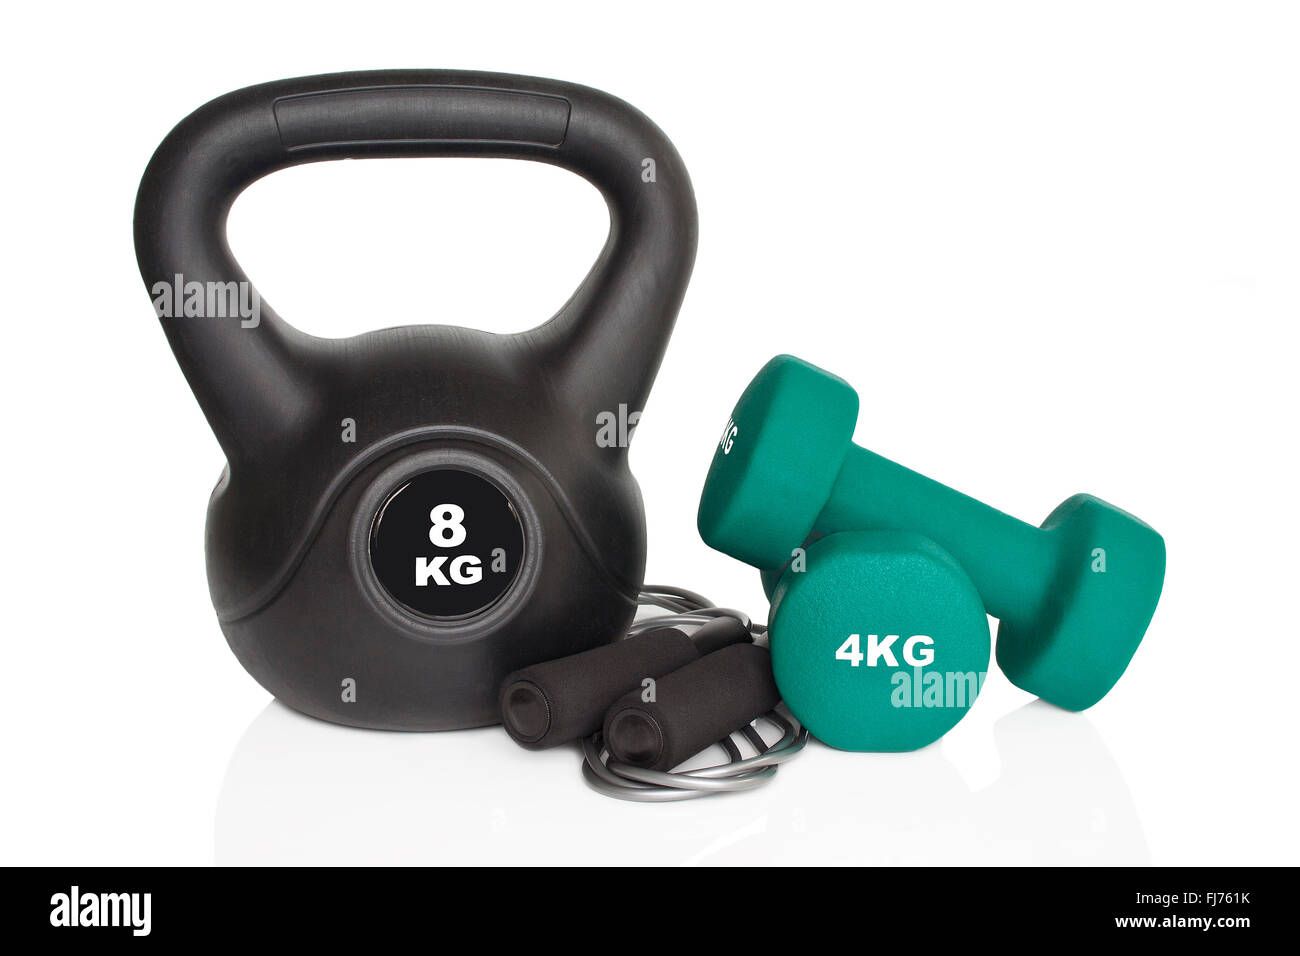 Dumbbells, kettlebell and skipping rope isolated on white background. Weights for a fitness training. - Stock Image